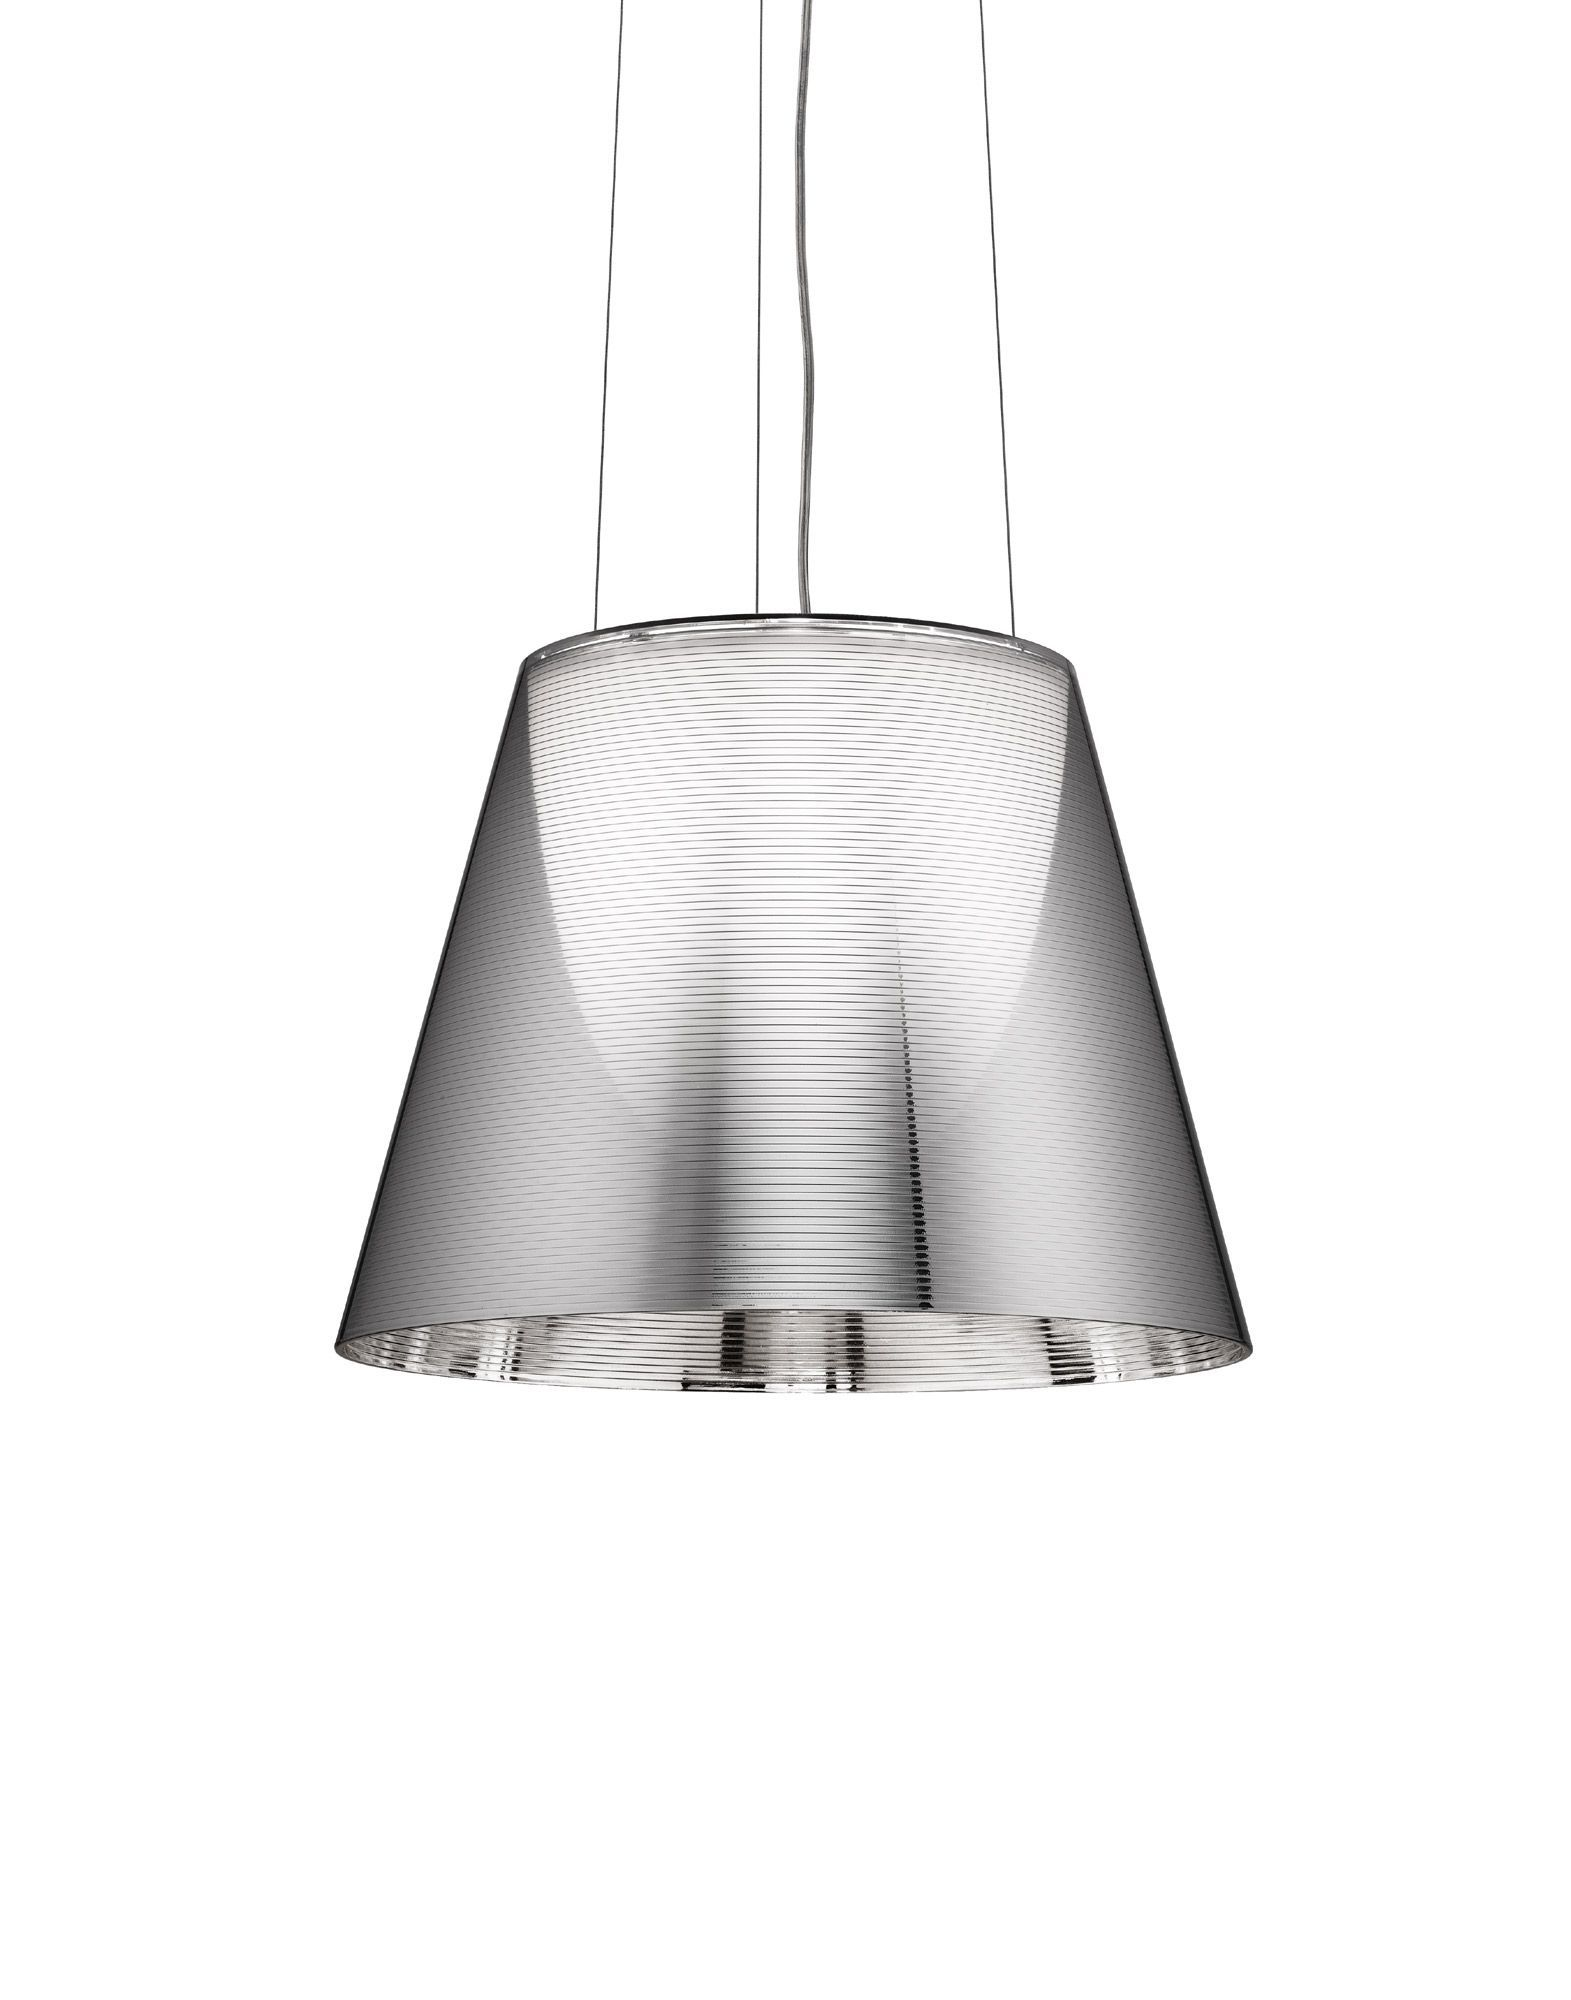 FLOS Suspension lamp LIGHTING (With images) Suspension